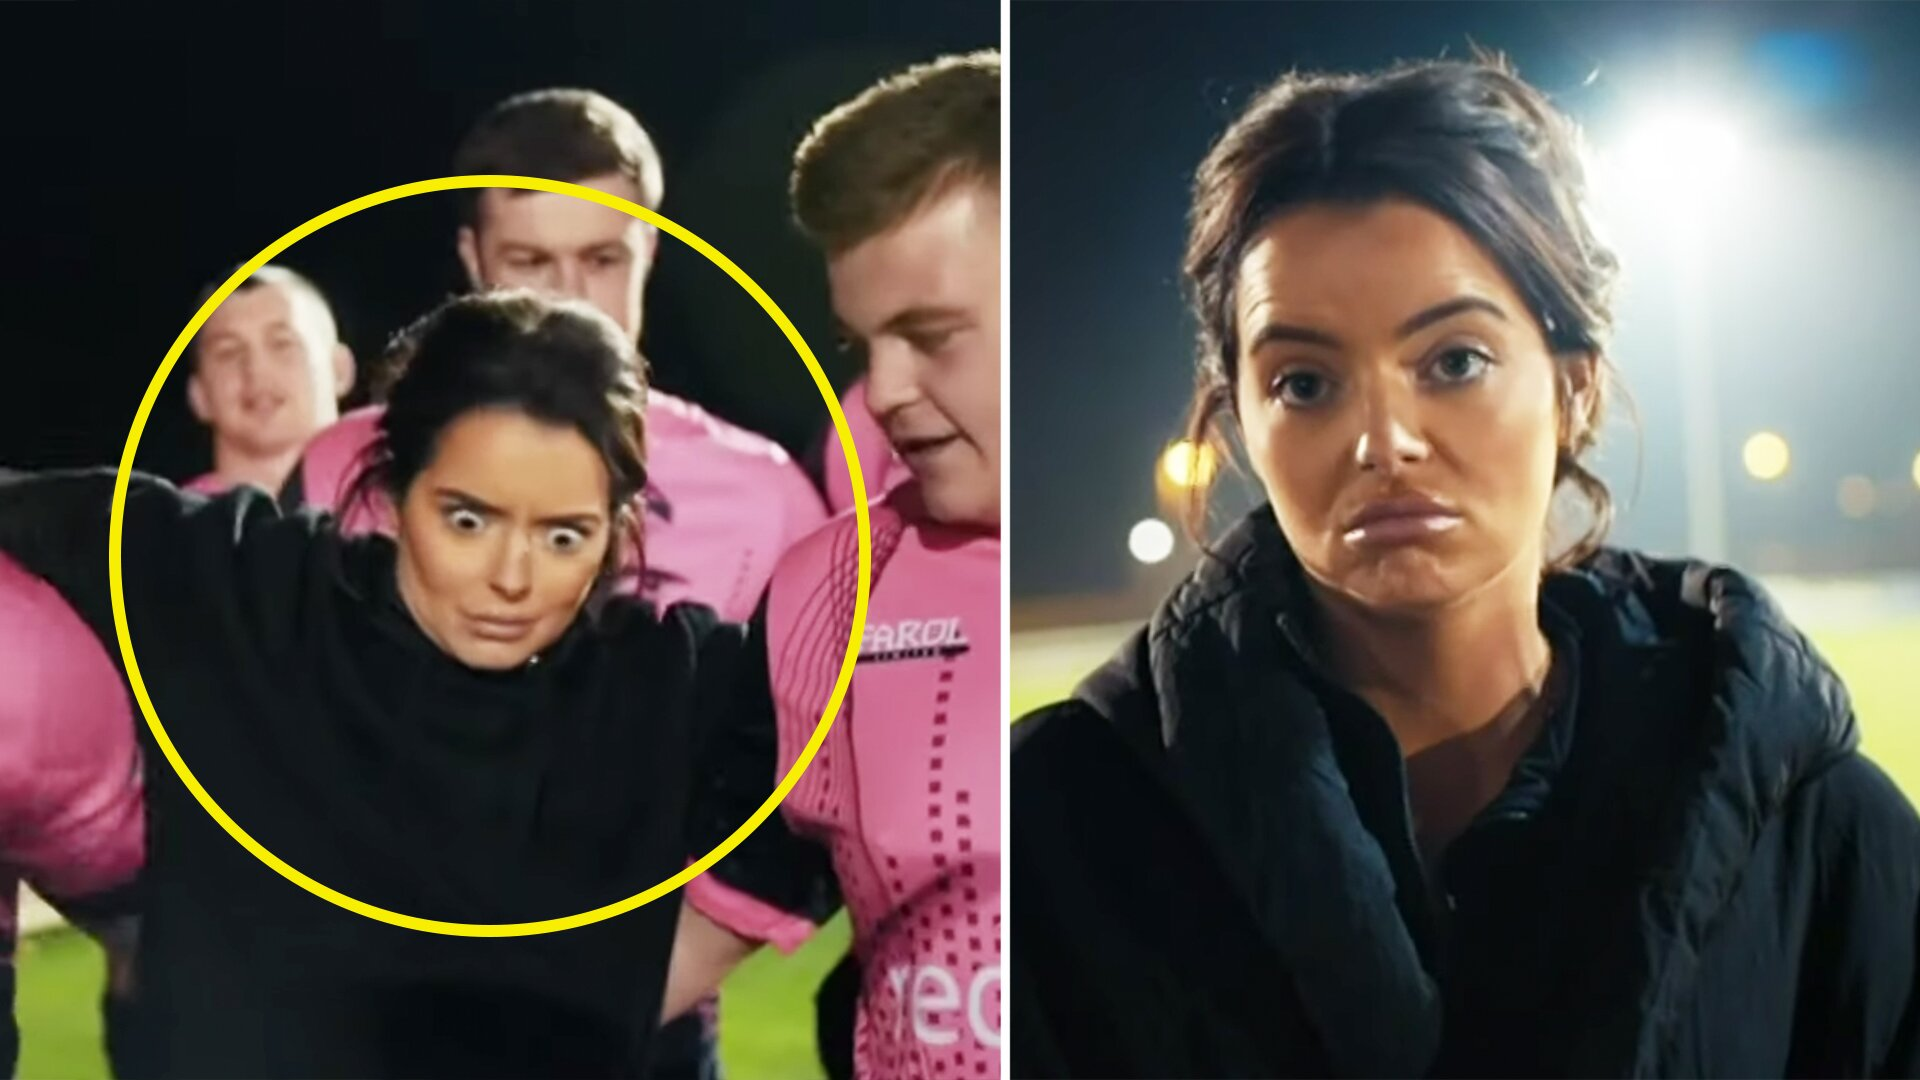 New video shows Love Island star Maura Higgins playing rugby for first time